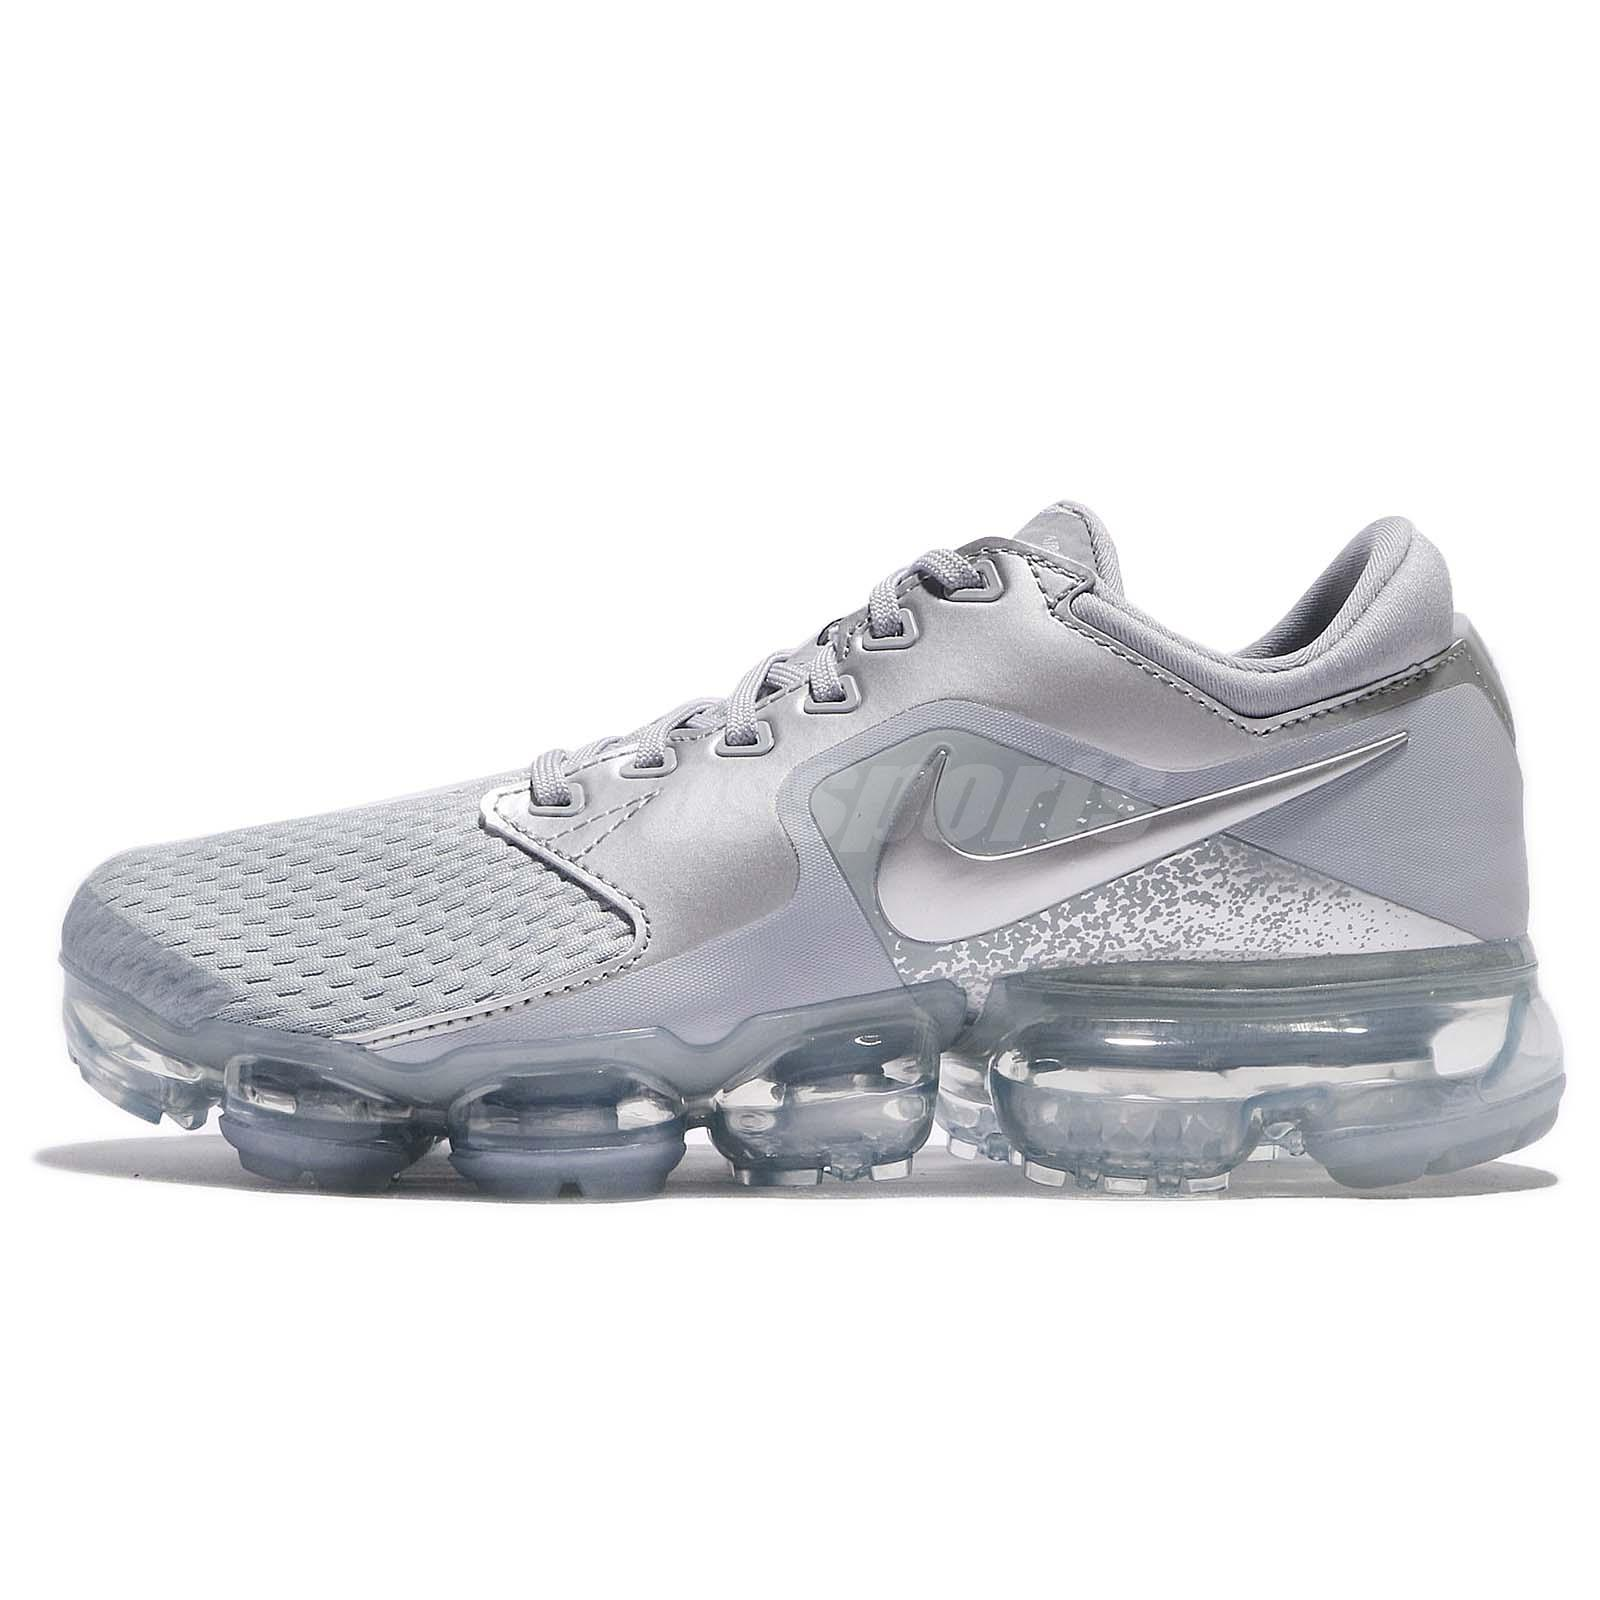 Air Wmns Sneakers Running Nike Grey Women Shoes Wolf Silver Vapormax E2IYWH9D